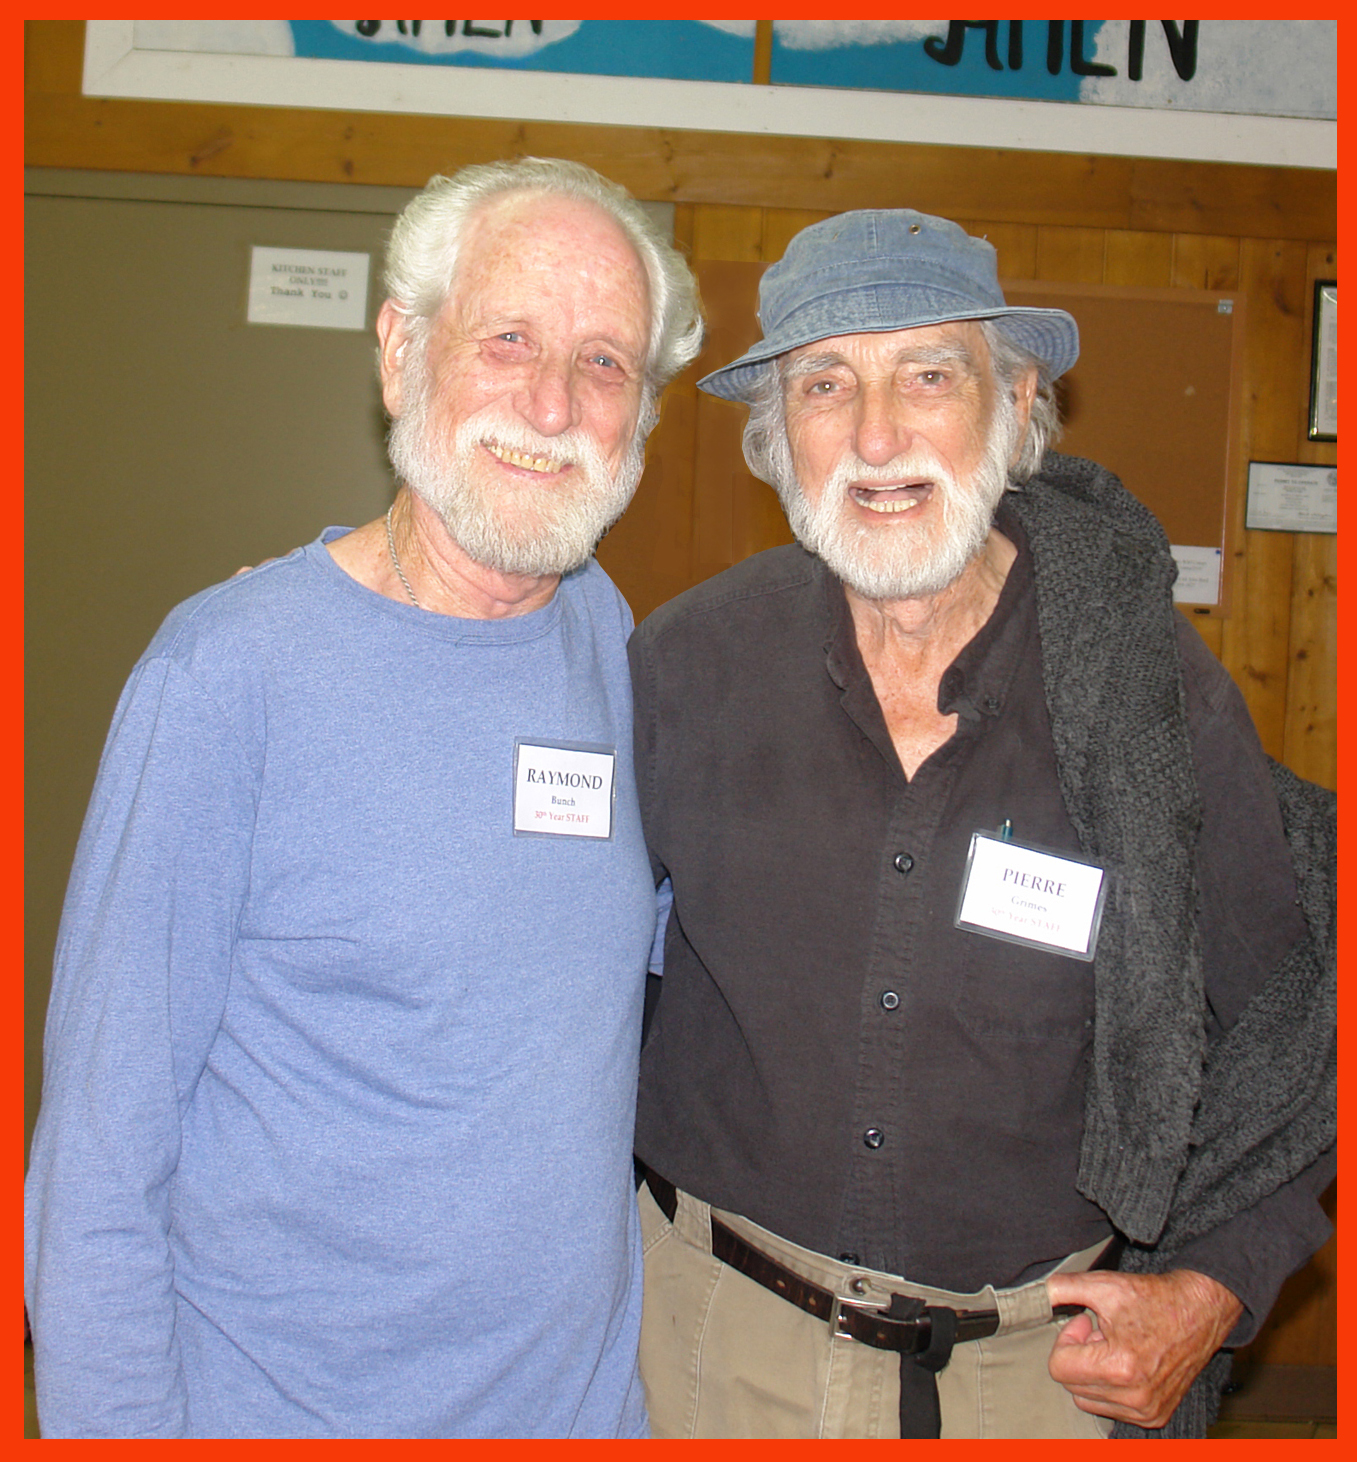 Sacred Path presenters Ray Bunch and Pierre Grimes